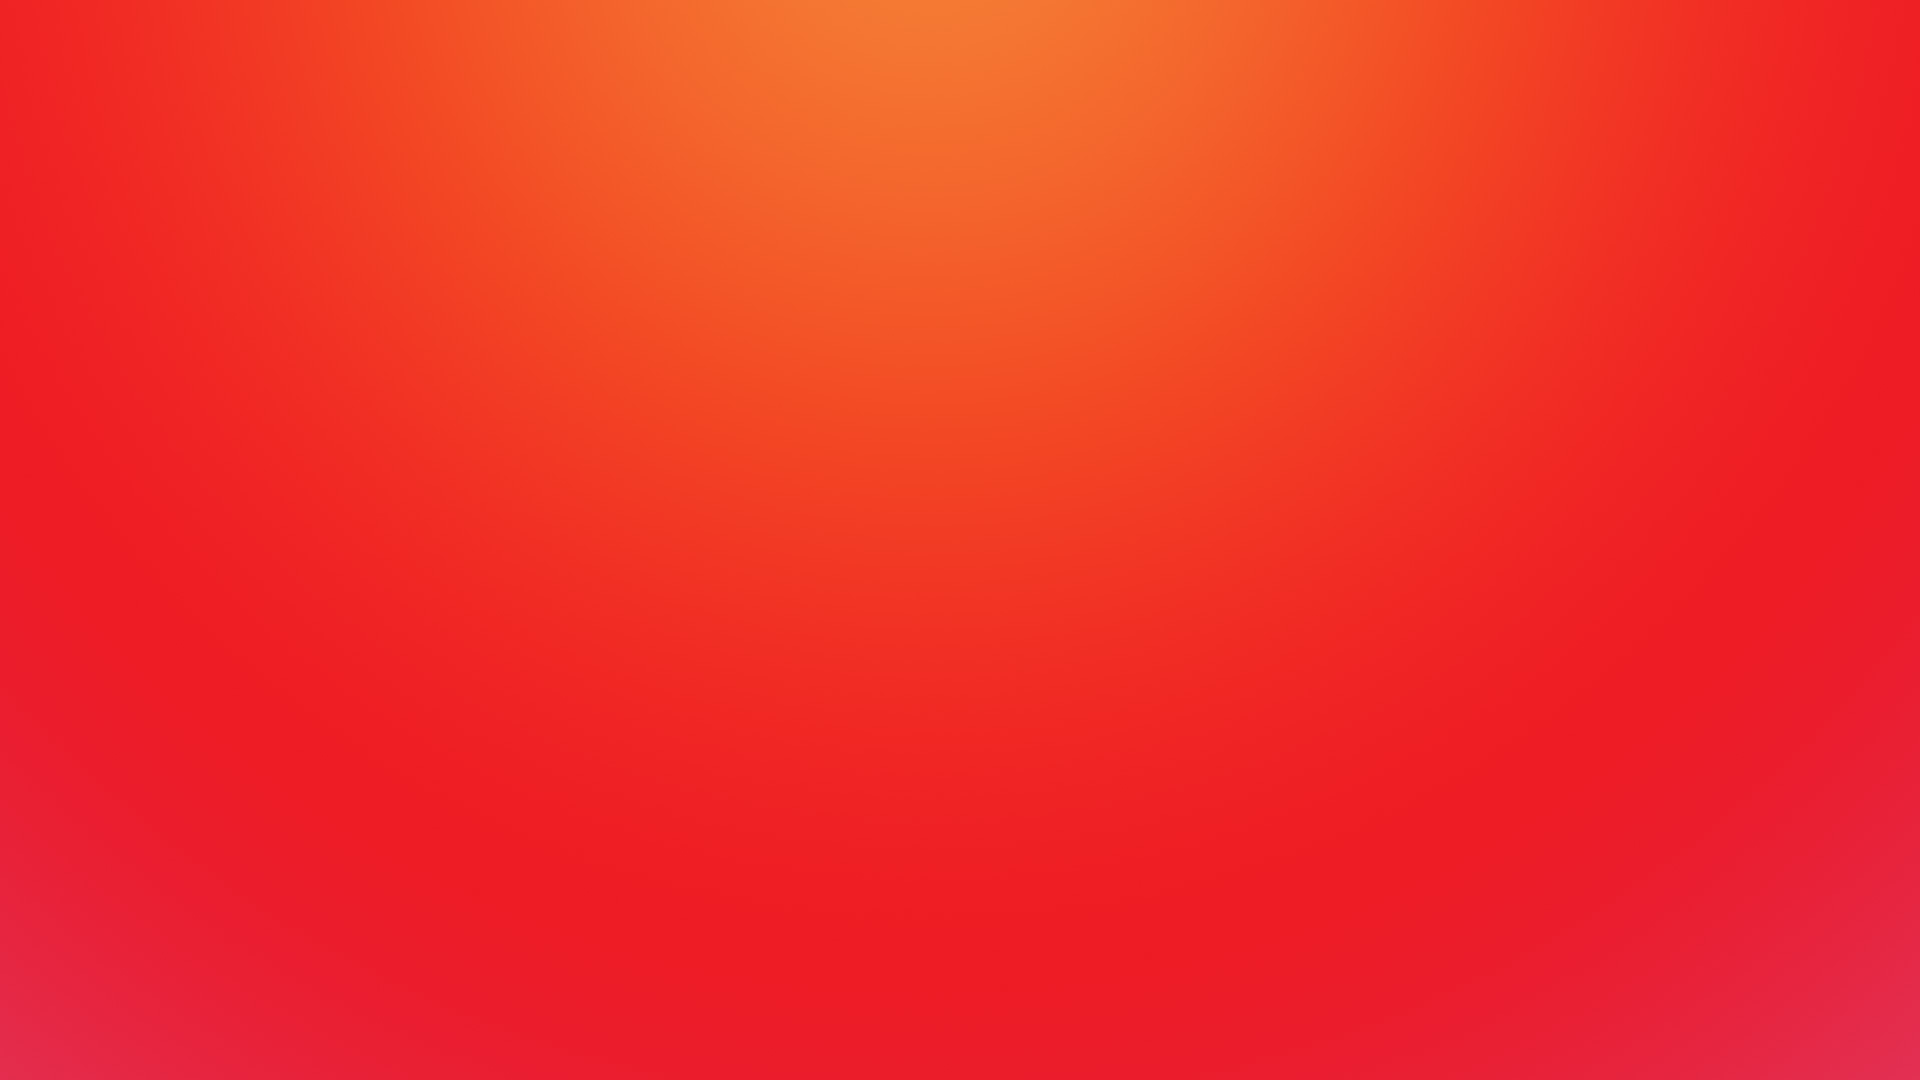 tomato-red-Presentation-Gradient-Background